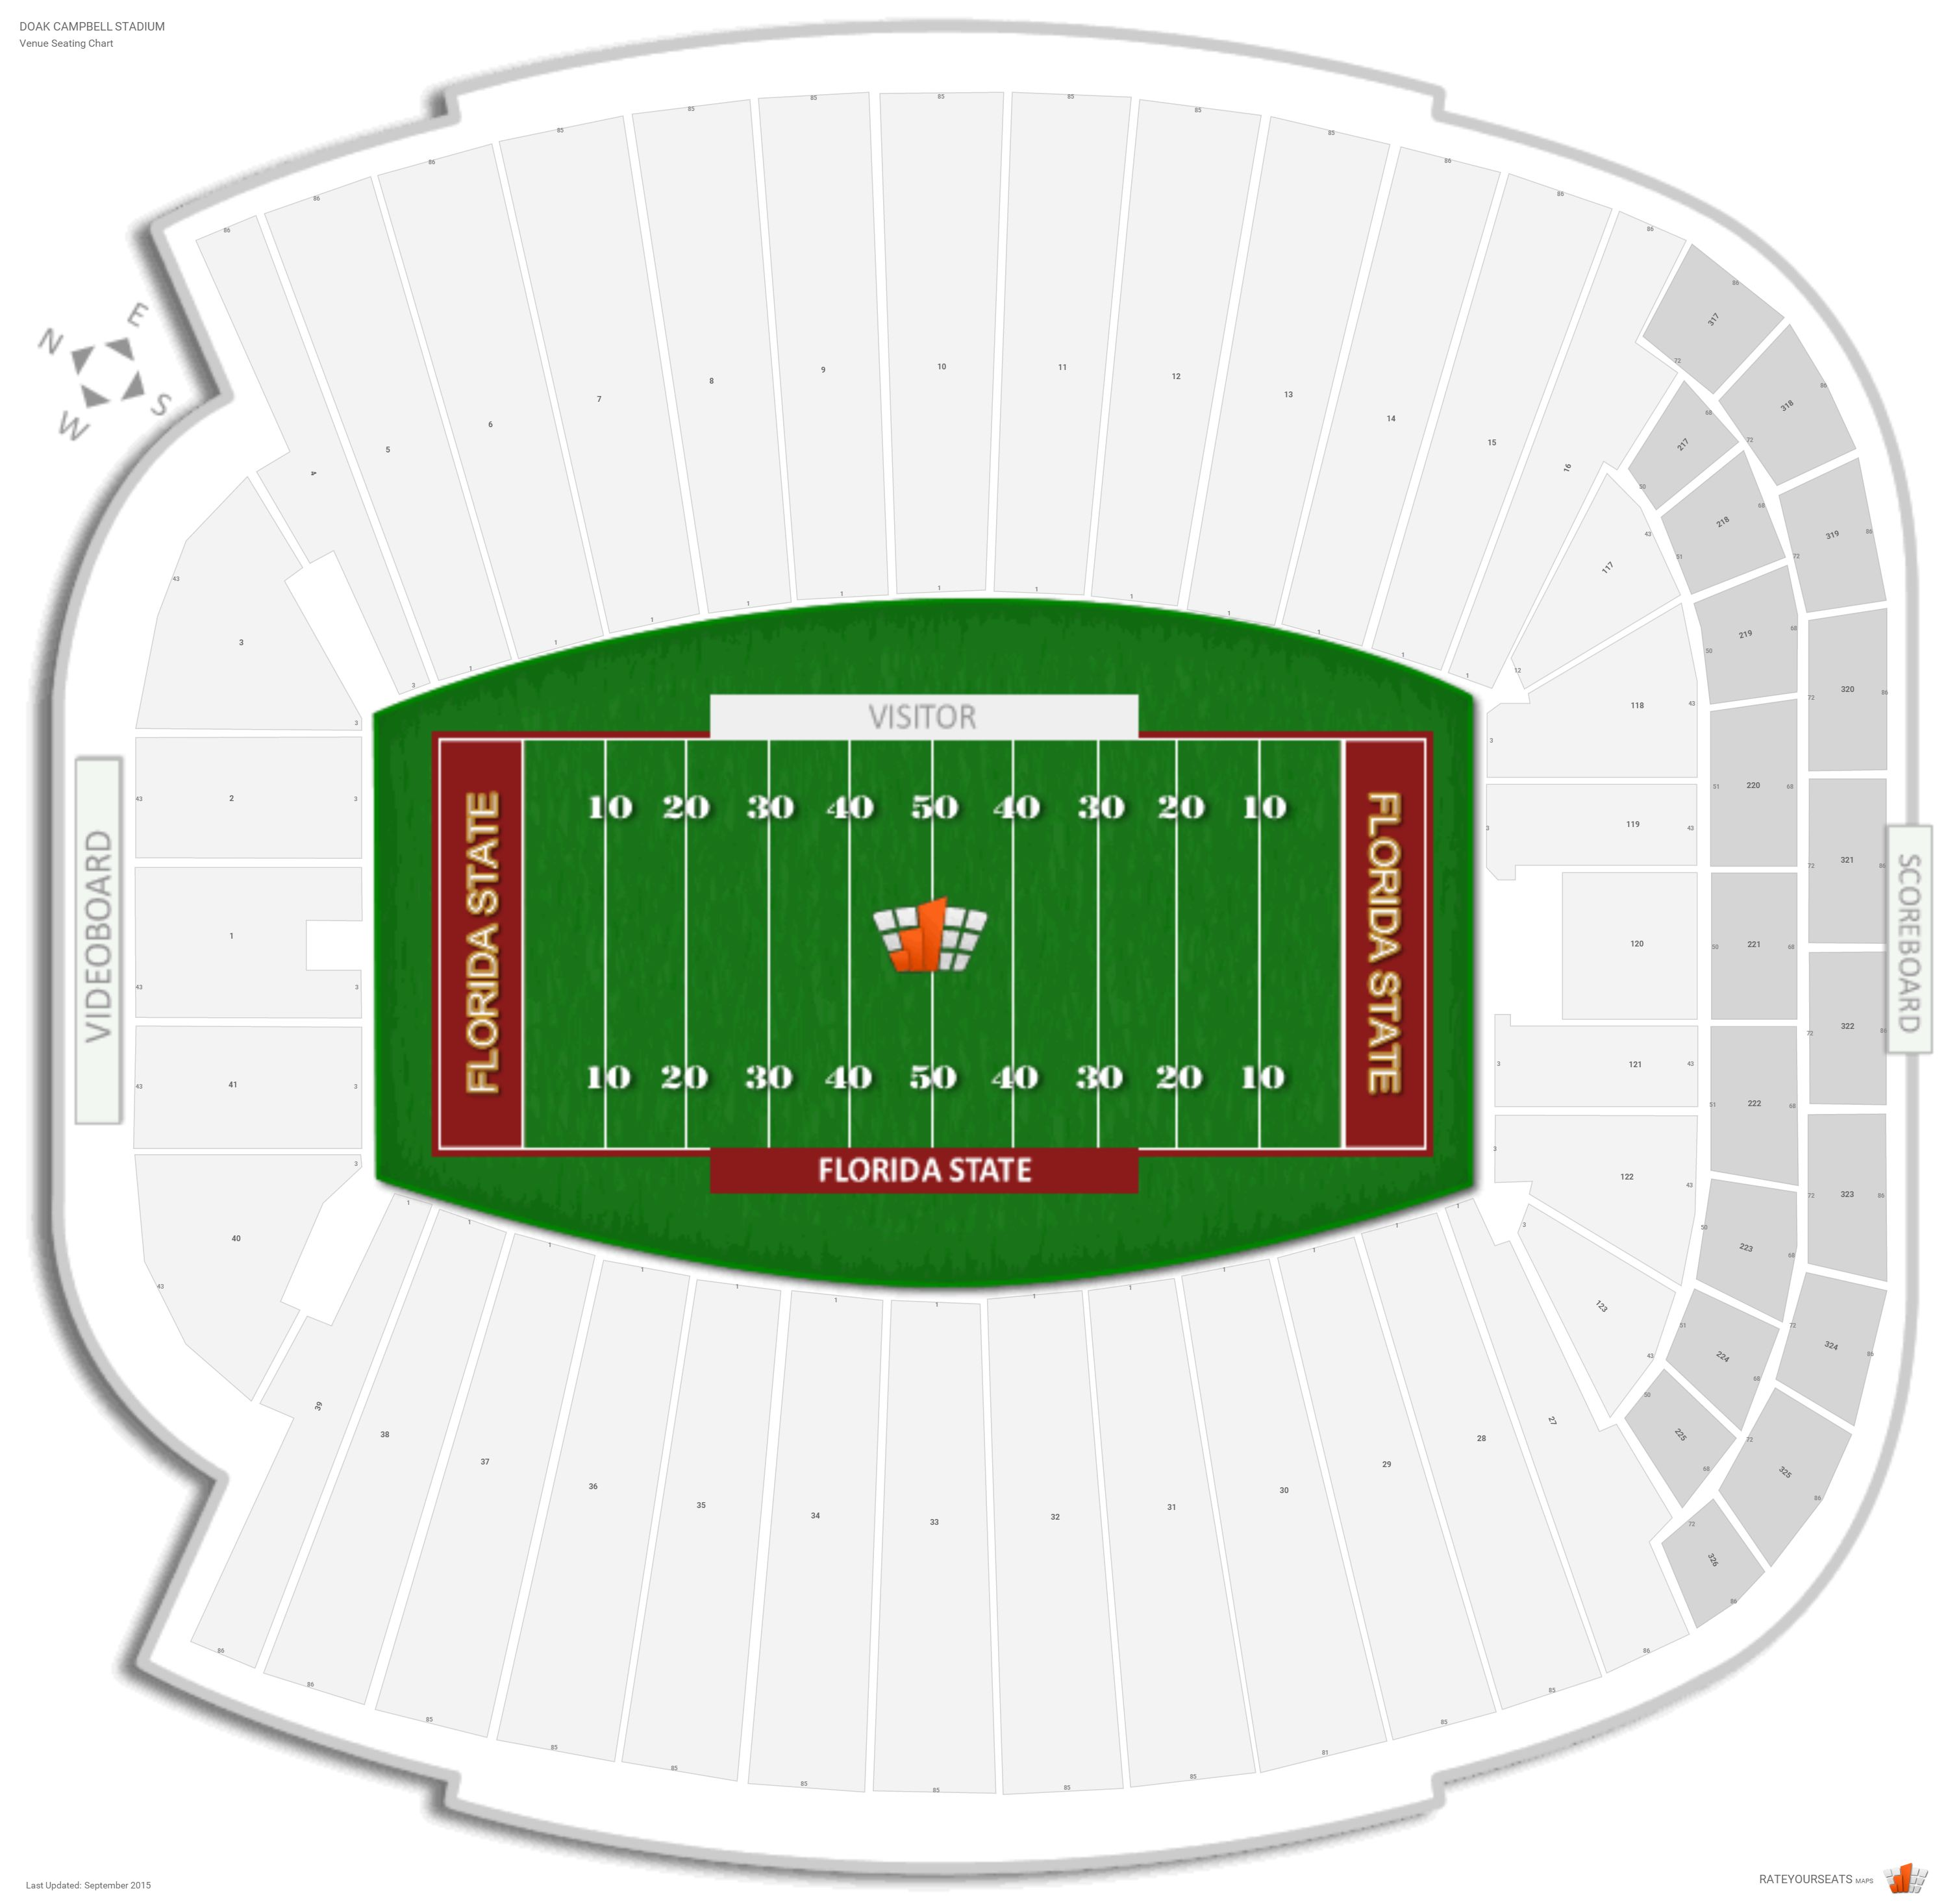 Doak Campbell Stadium Seating Chart With Row Numbers